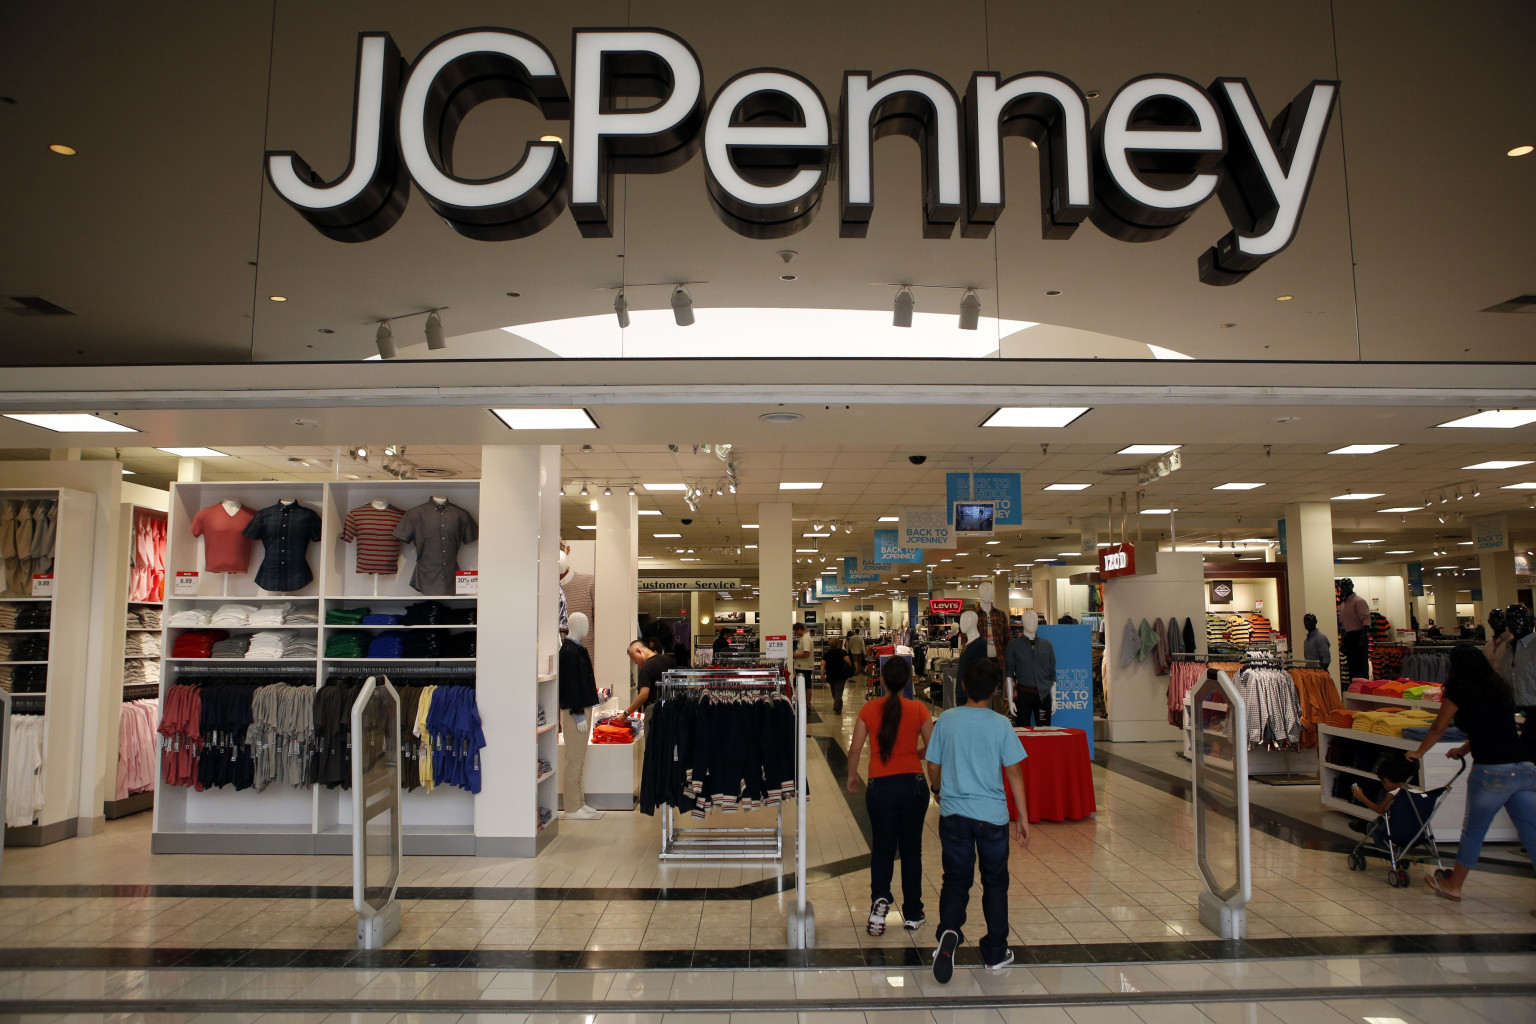 Coupon can be combined with earned JCPenney Rewards and JCPenney Credit Card new account in-store discount. Coupon cannot be used for payment on account. Coupon cannot be redeemed as cash or merchandise credit if merchandise is returned. No cash value.